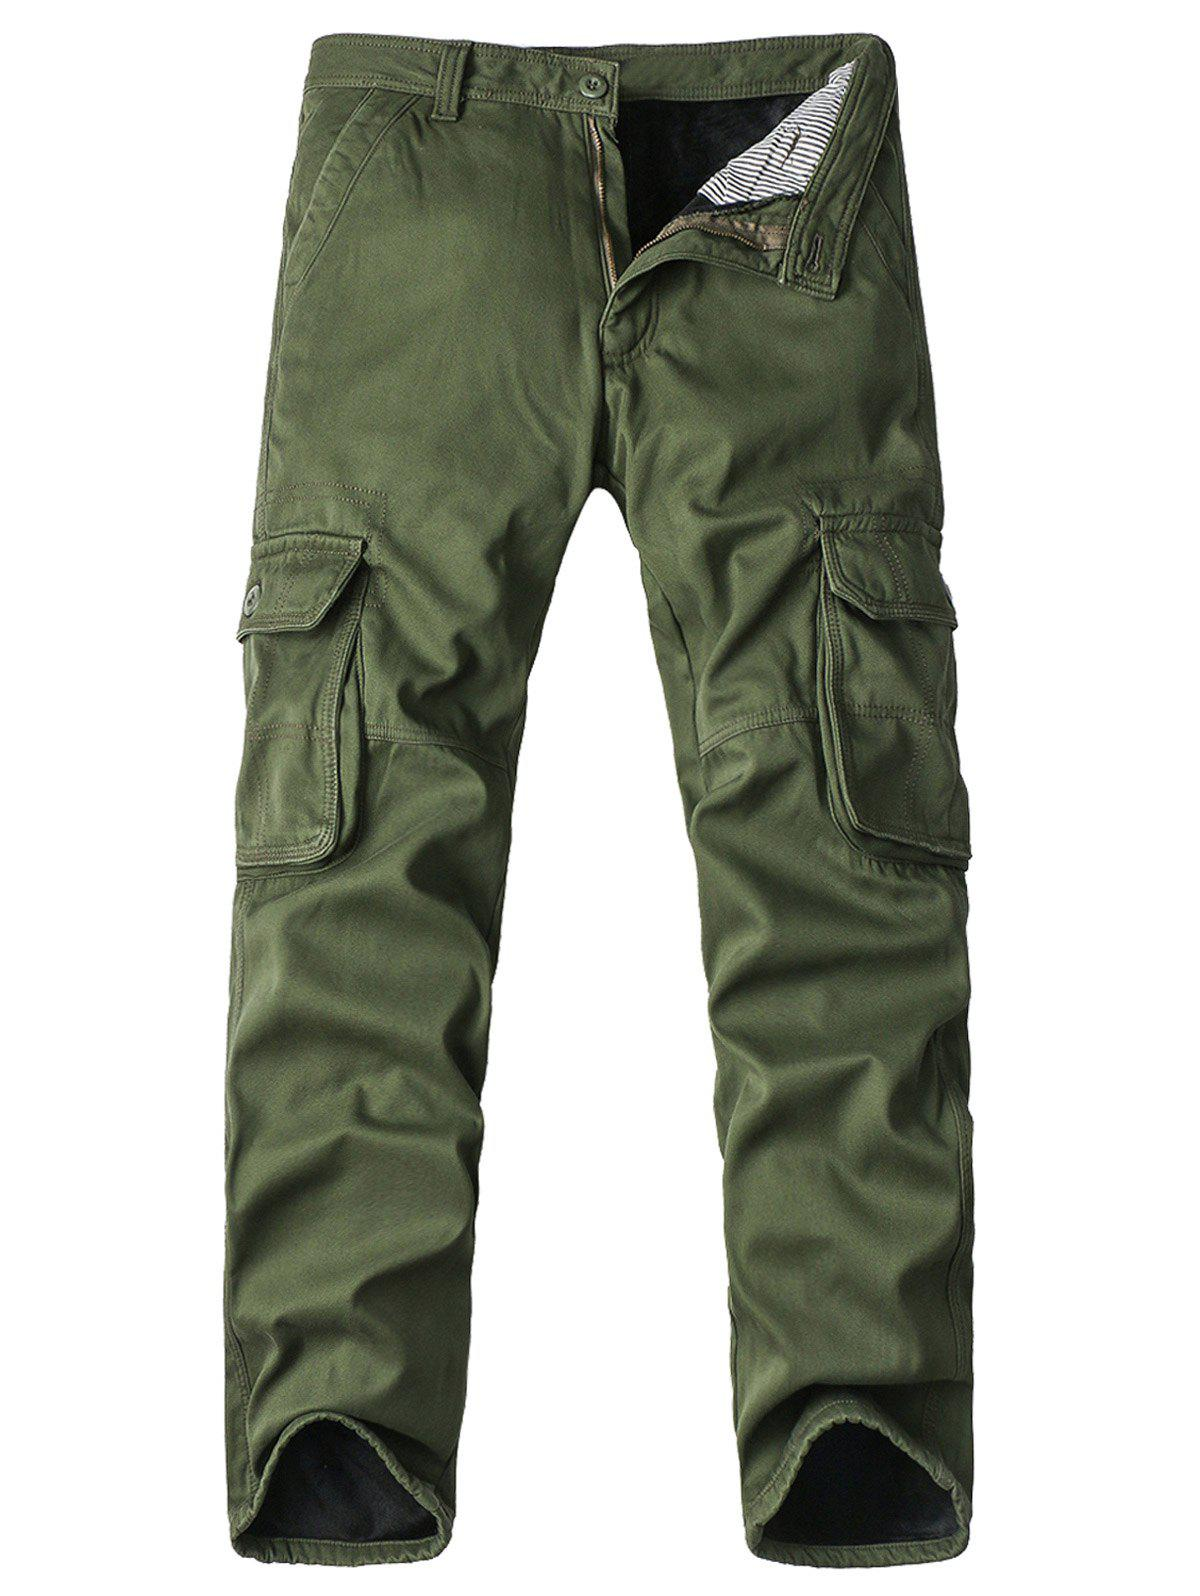 Zipper Fly Straight Leg Pockets Embellished Fleece Cargo Pants стойка для клавишных ultimate js mps1